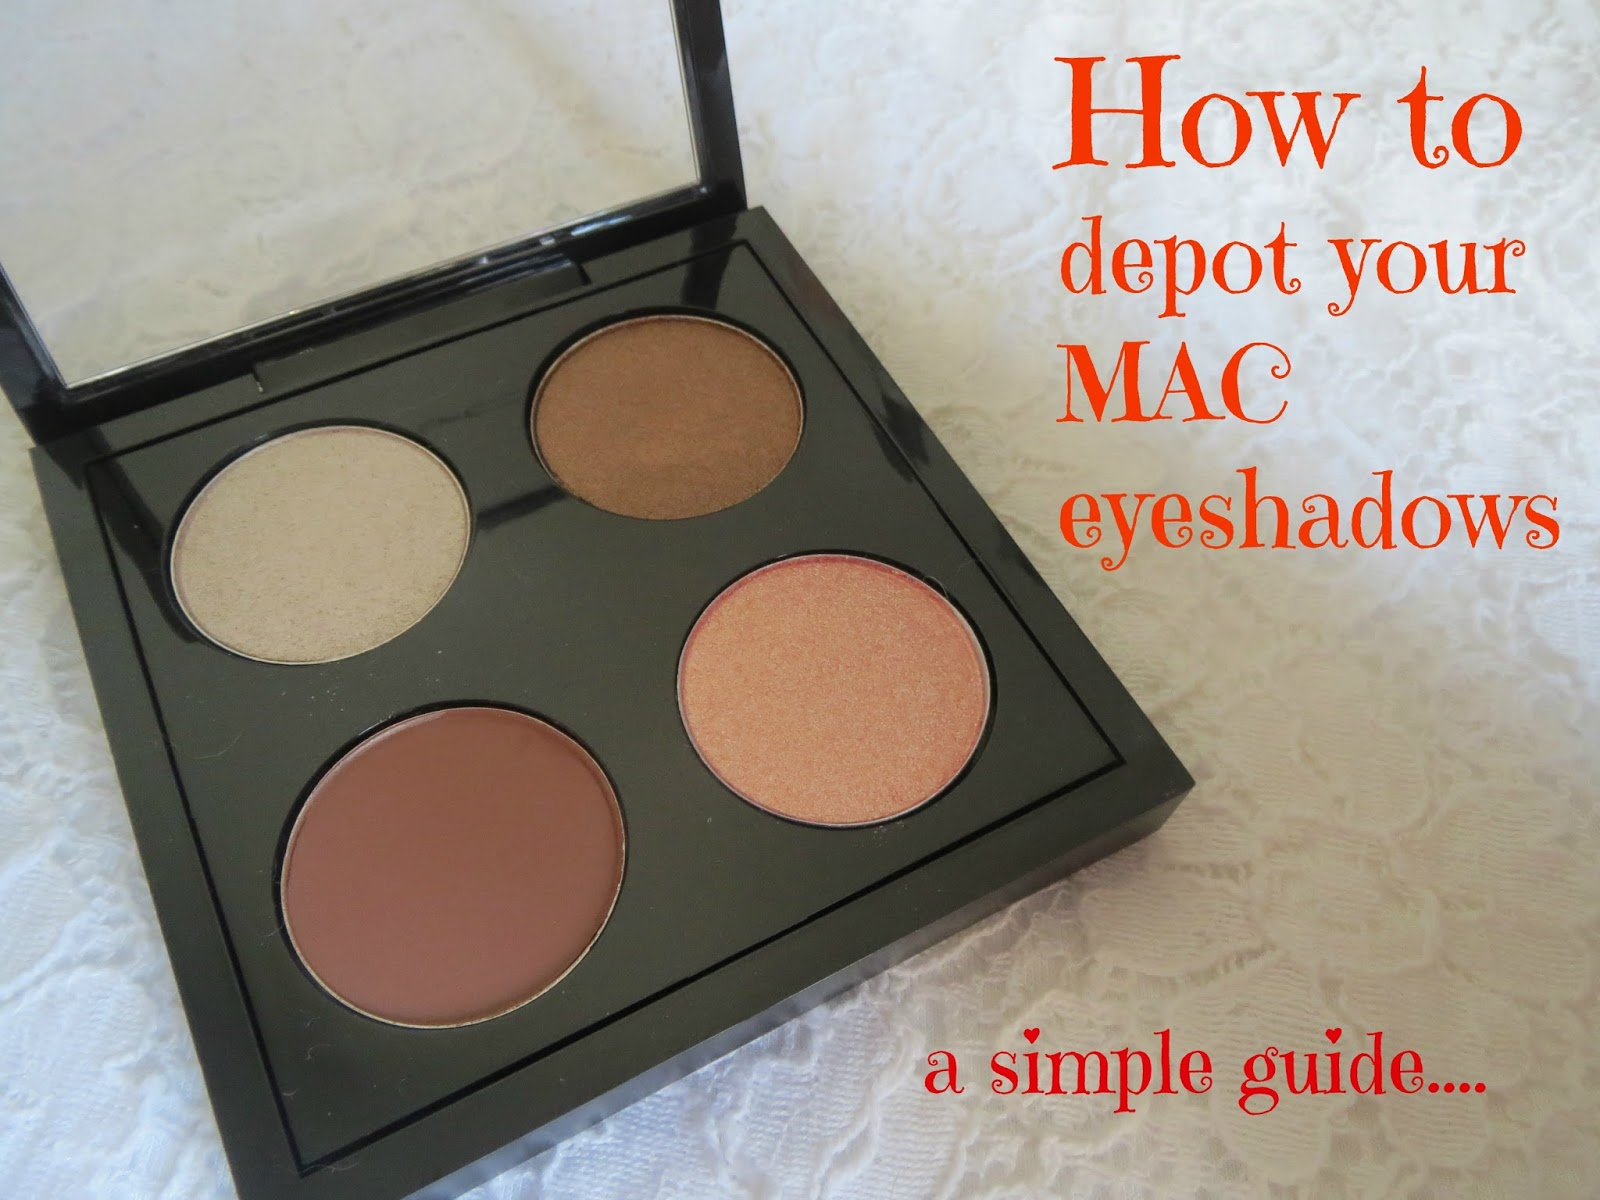 How to De-Pot Your Eyeshadows Without RuiningThem